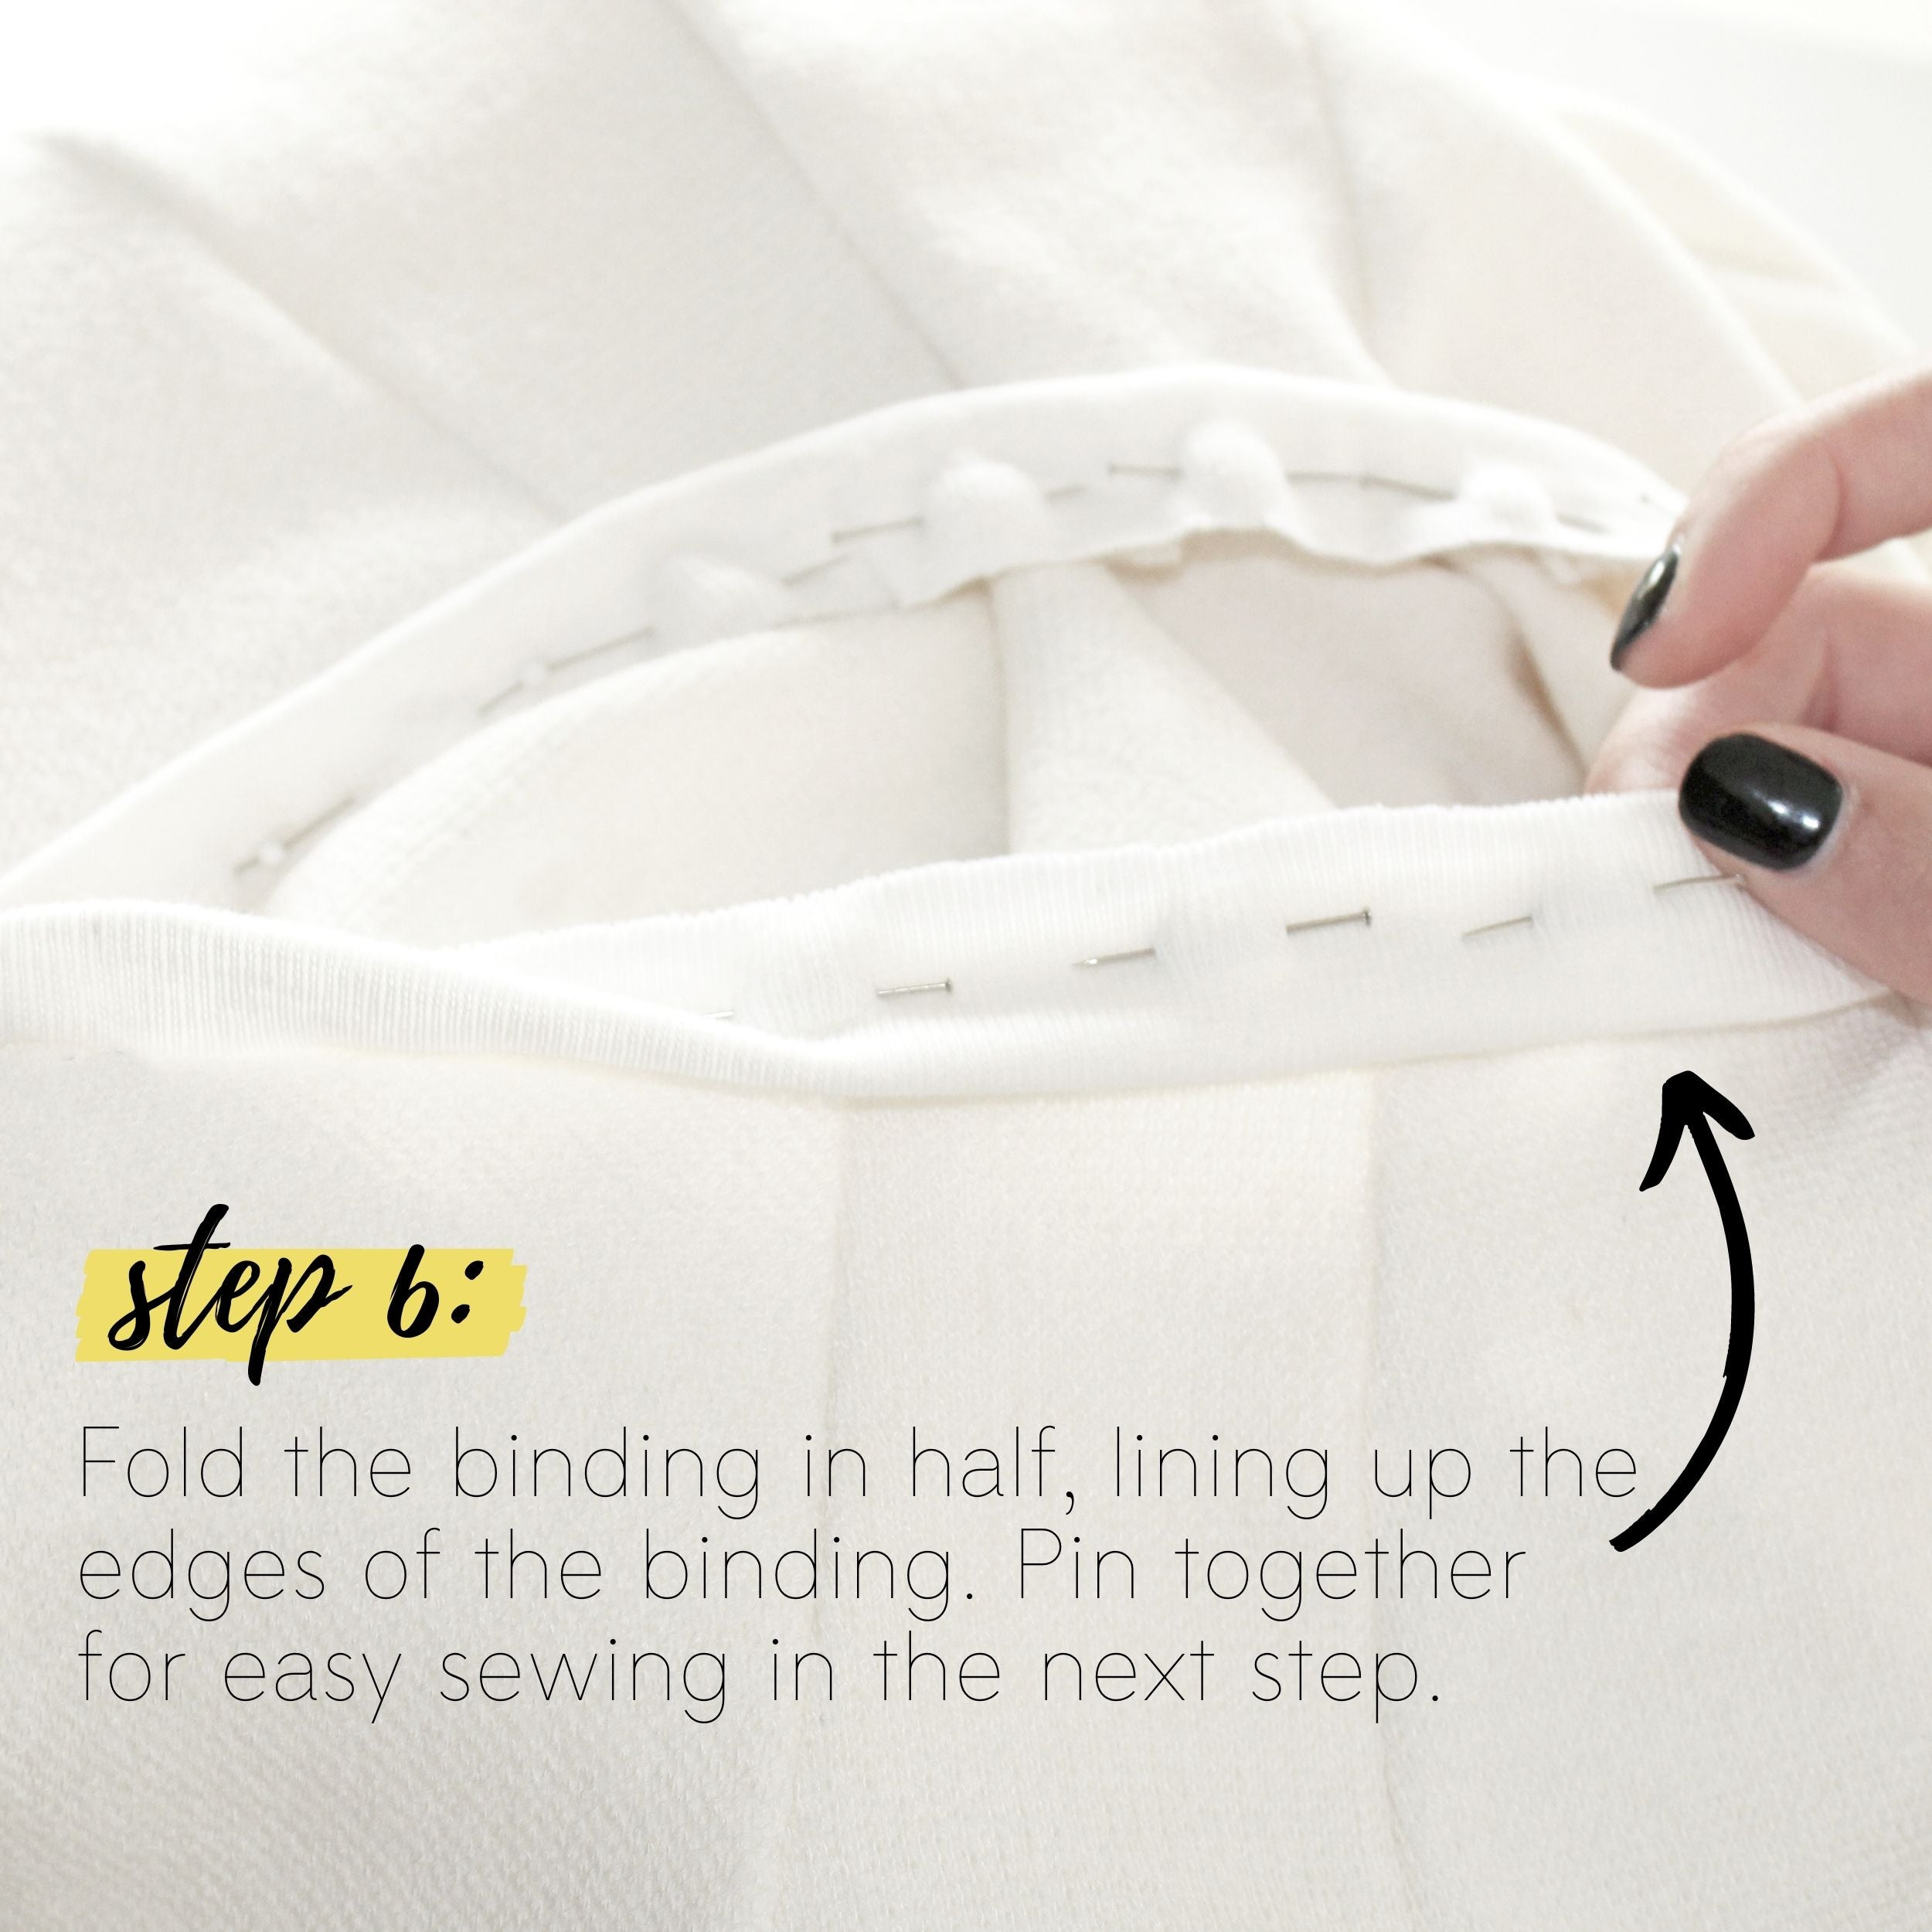 How To Sew A Knit Seam Binding Sewing Tutorial: Step 6